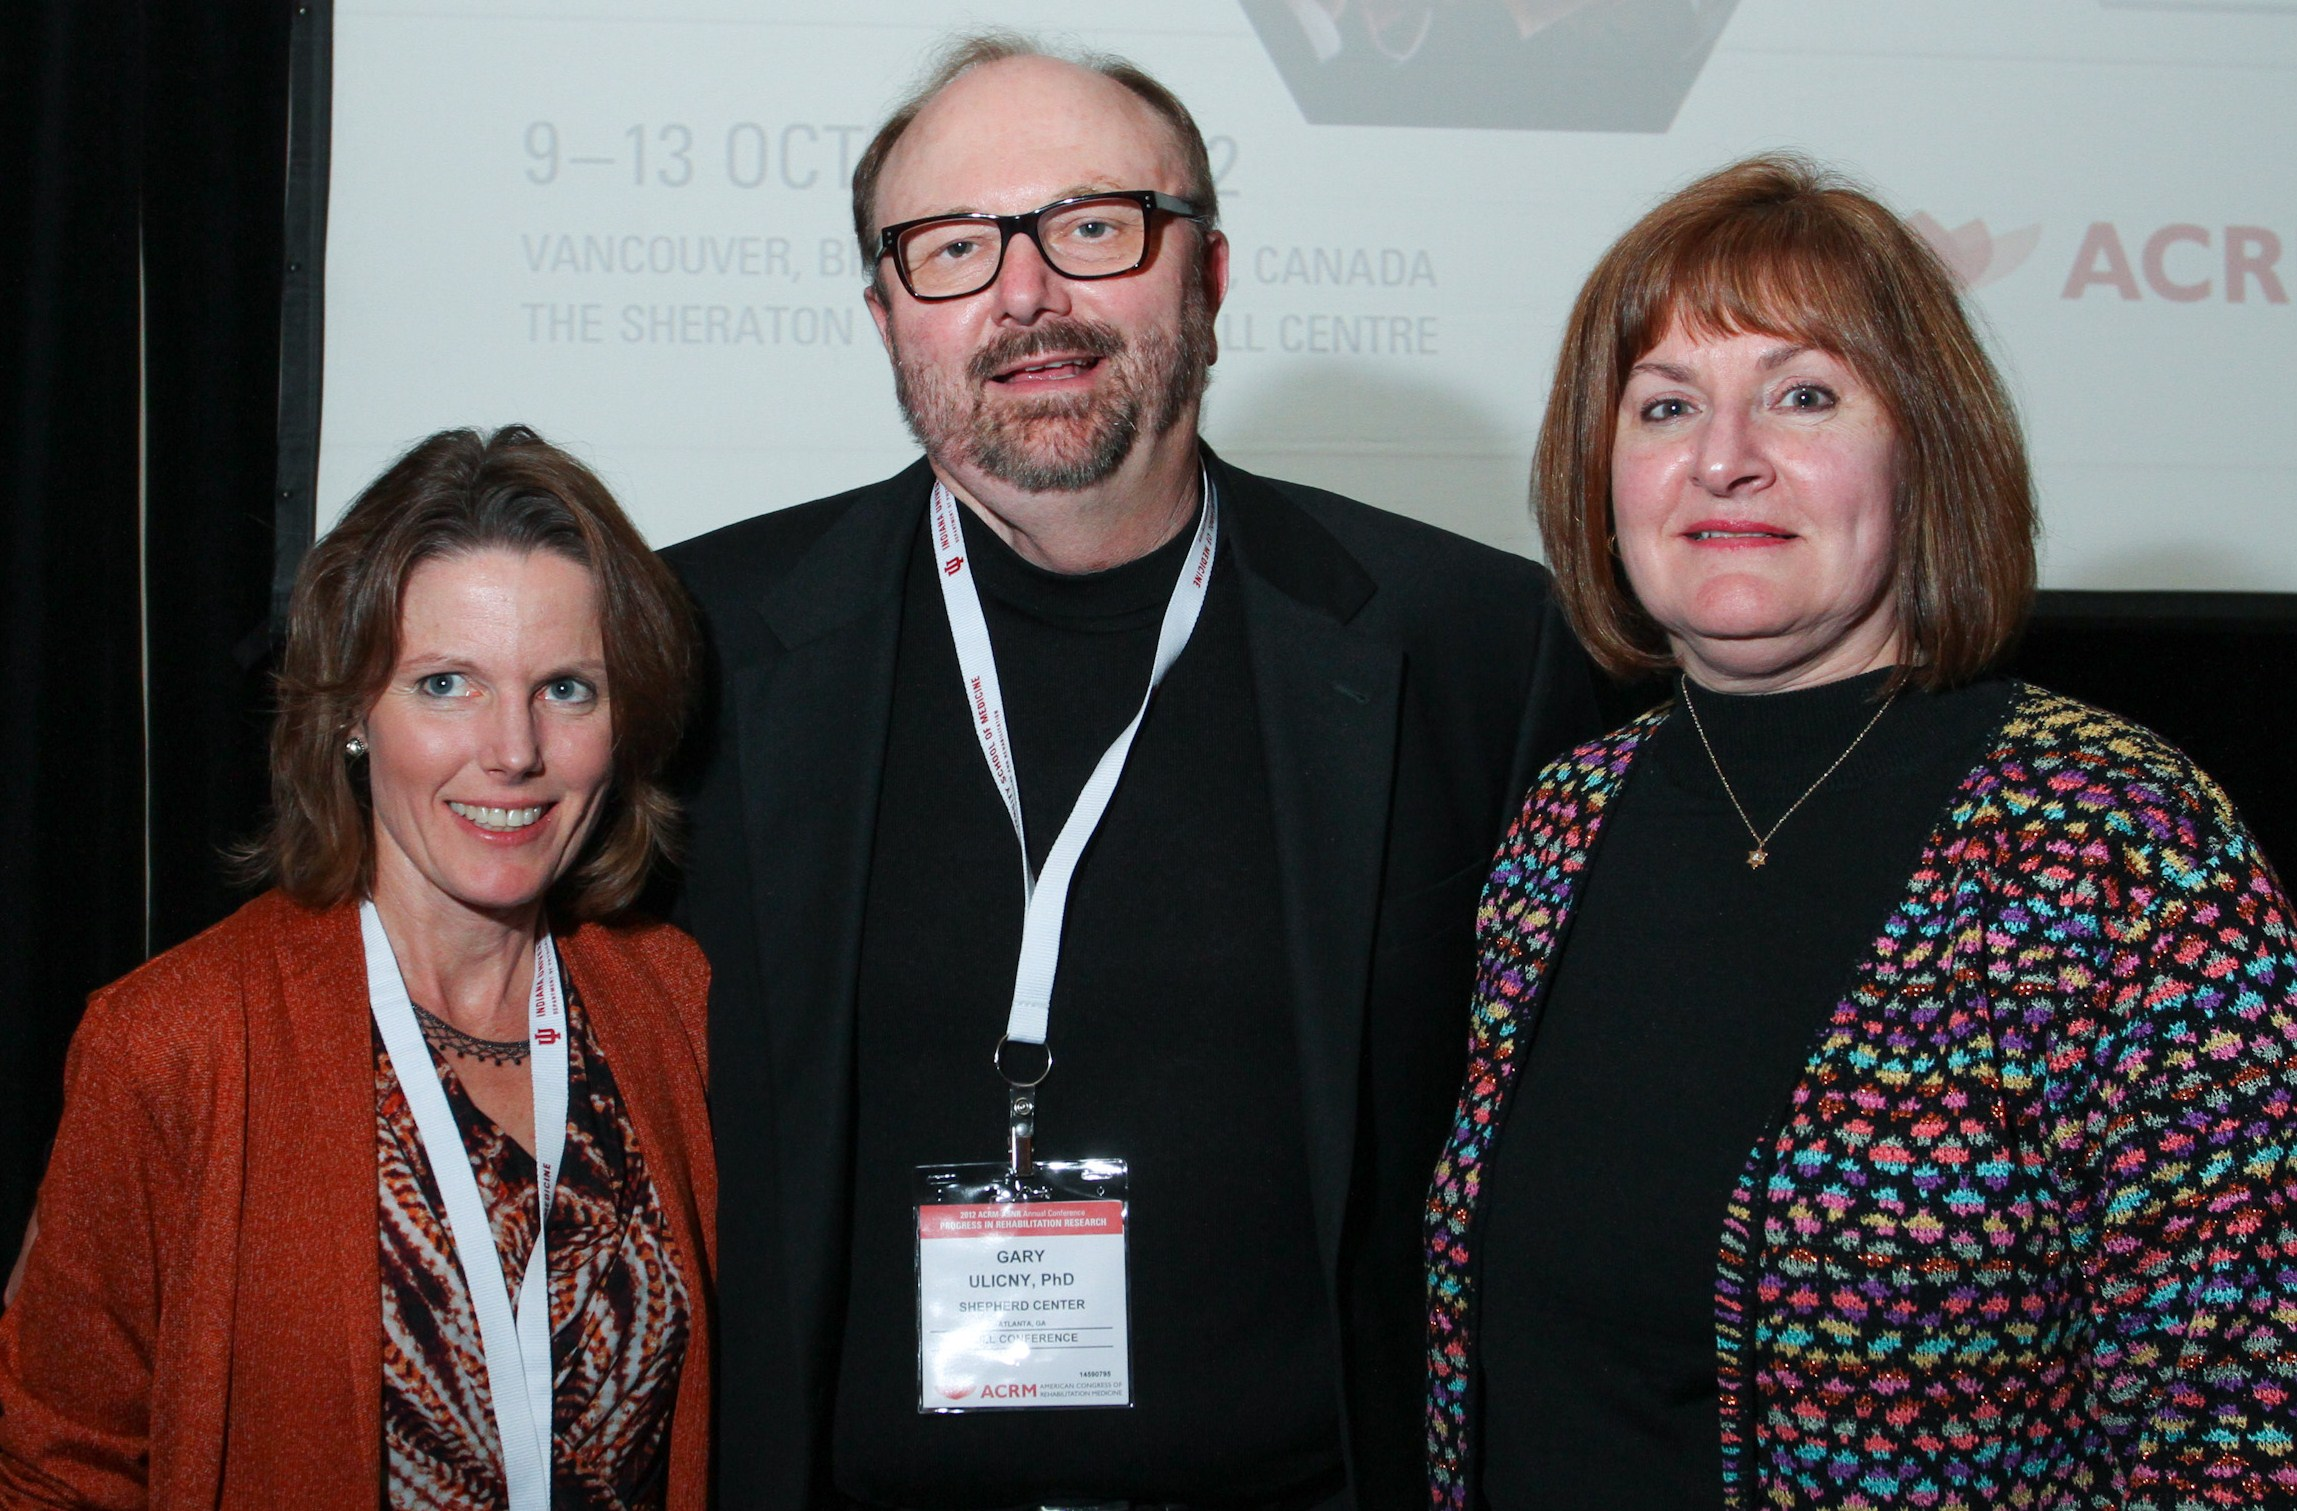 Jennifer Bogner, Gary Ulicny, Susie Charlifue